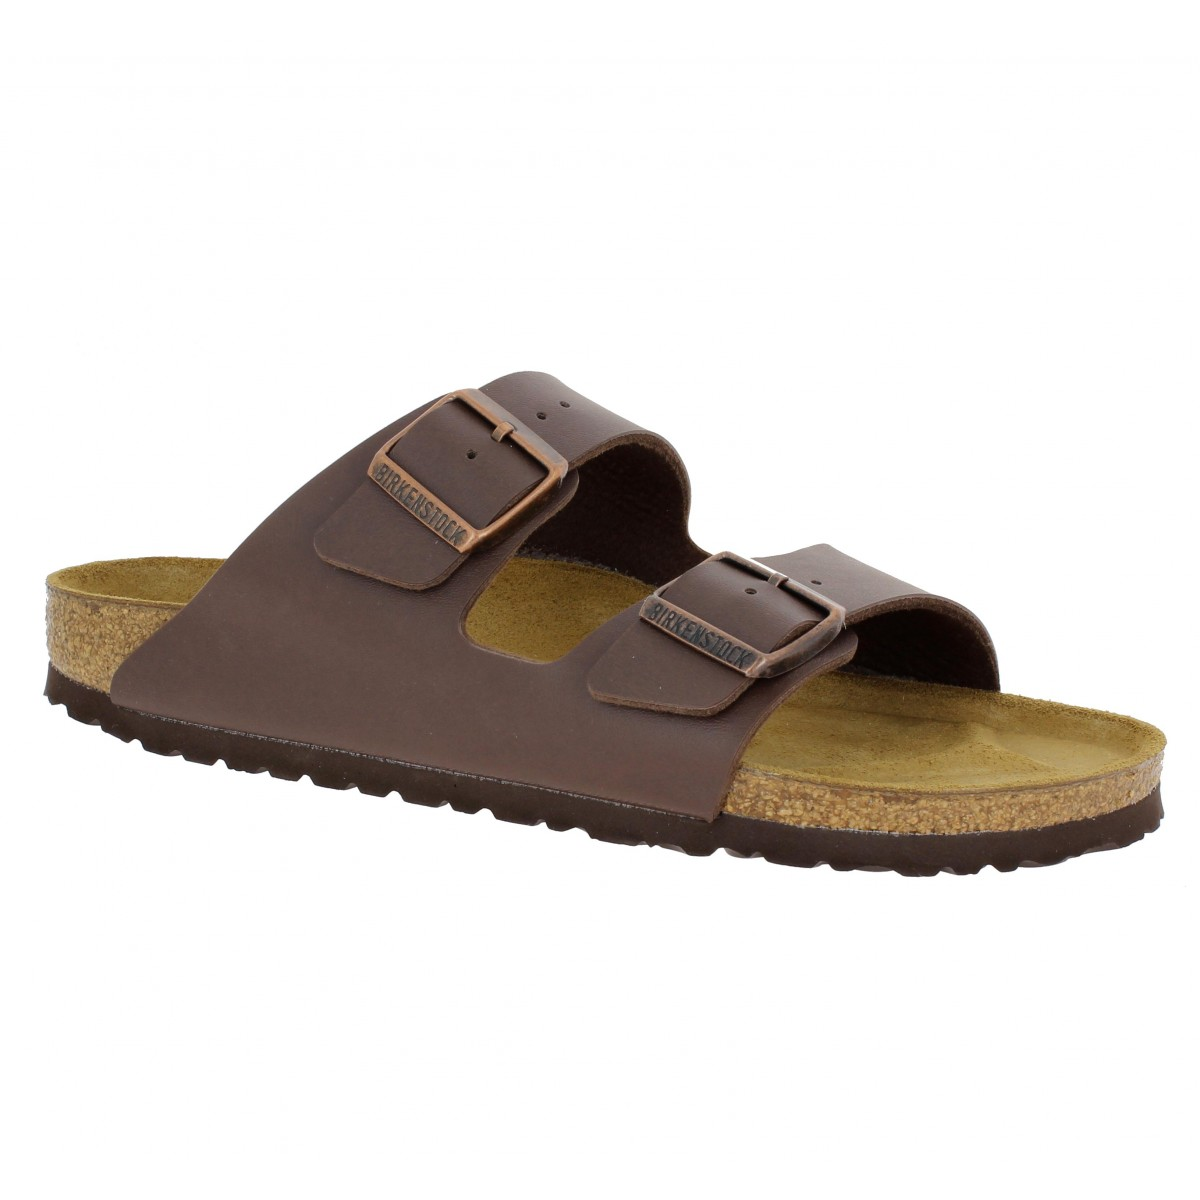 birkenstock homme hippie sandals. Black Bedroom Furniture Sets. Home Design Ideas